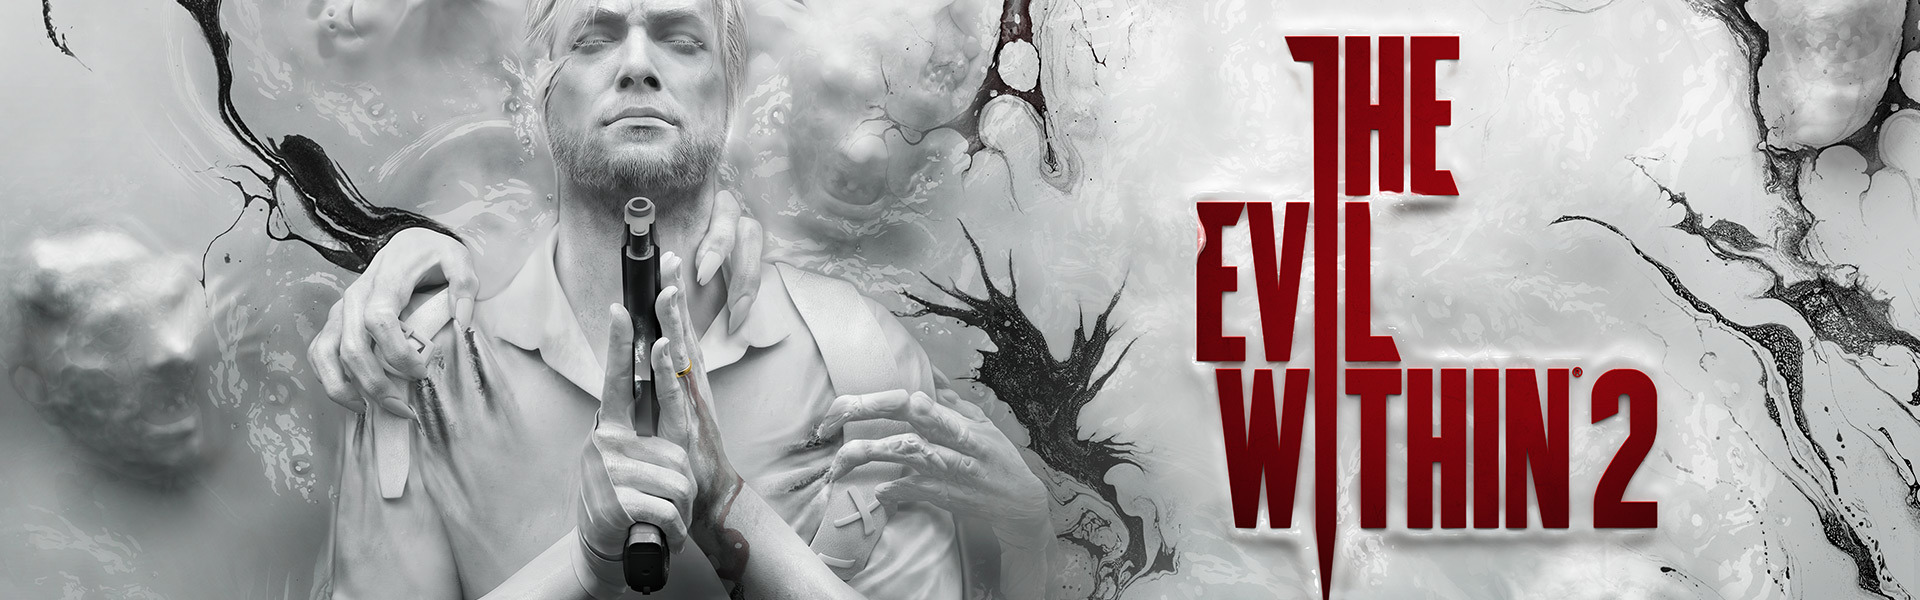 The Evil Within 2, Sebastian con una pistola afferrato da mostri dietro di lui